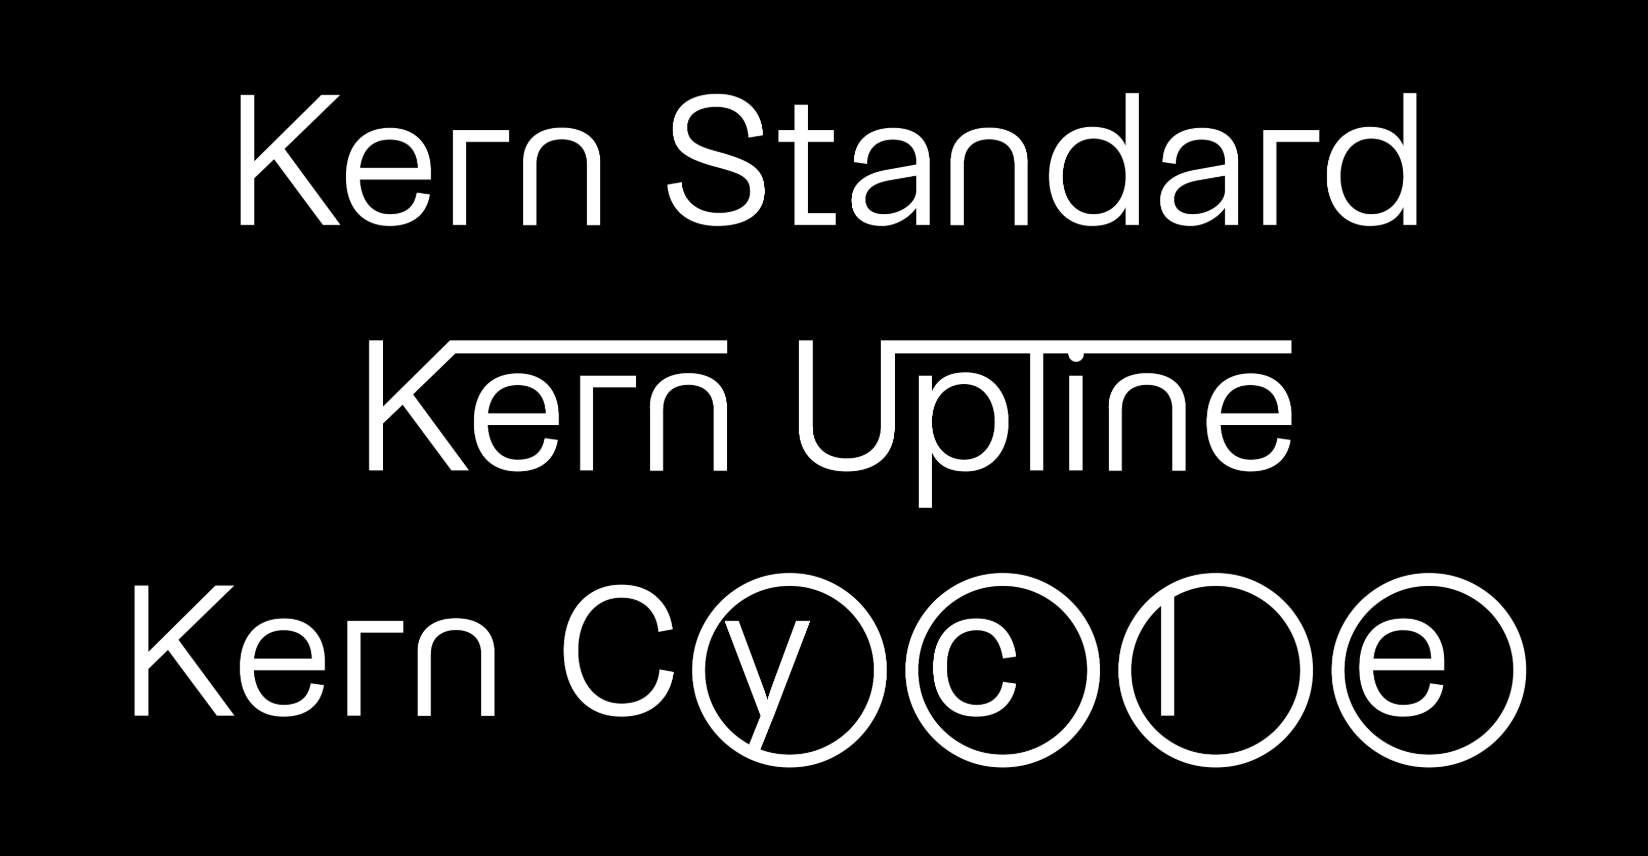 The Kern superfamily by Pizza Typefaces